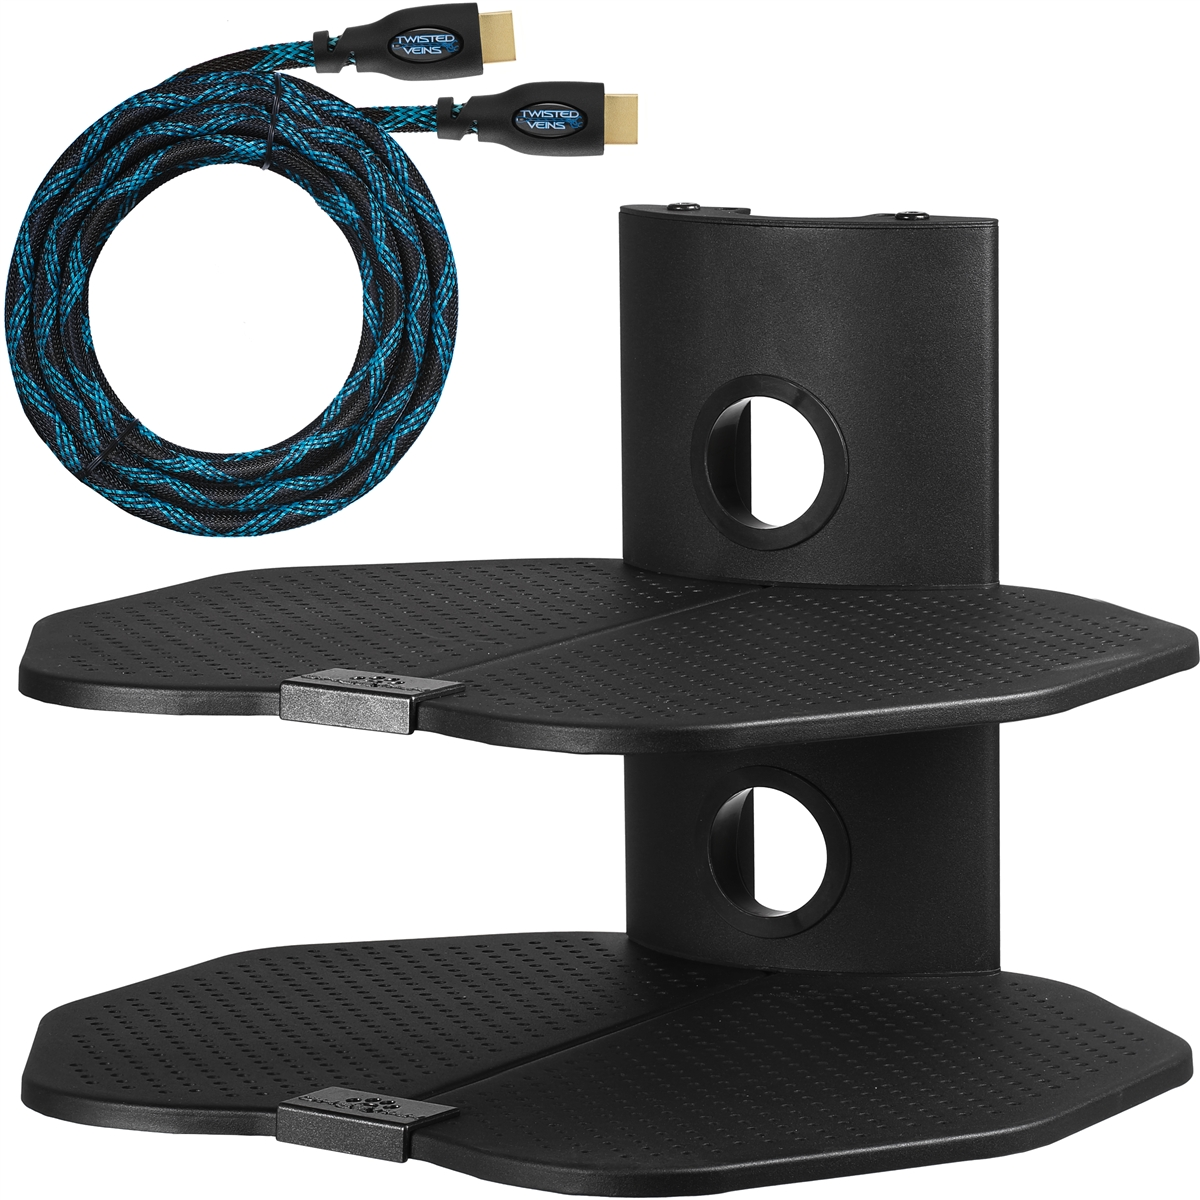 Cheetah Mounts As2b 2 Shelf Tv Component Wall Mount Shelving Bracket With 18x16 Shelf 15 Twisted Veins Hdmi Cable And Cable Management For Cable Or